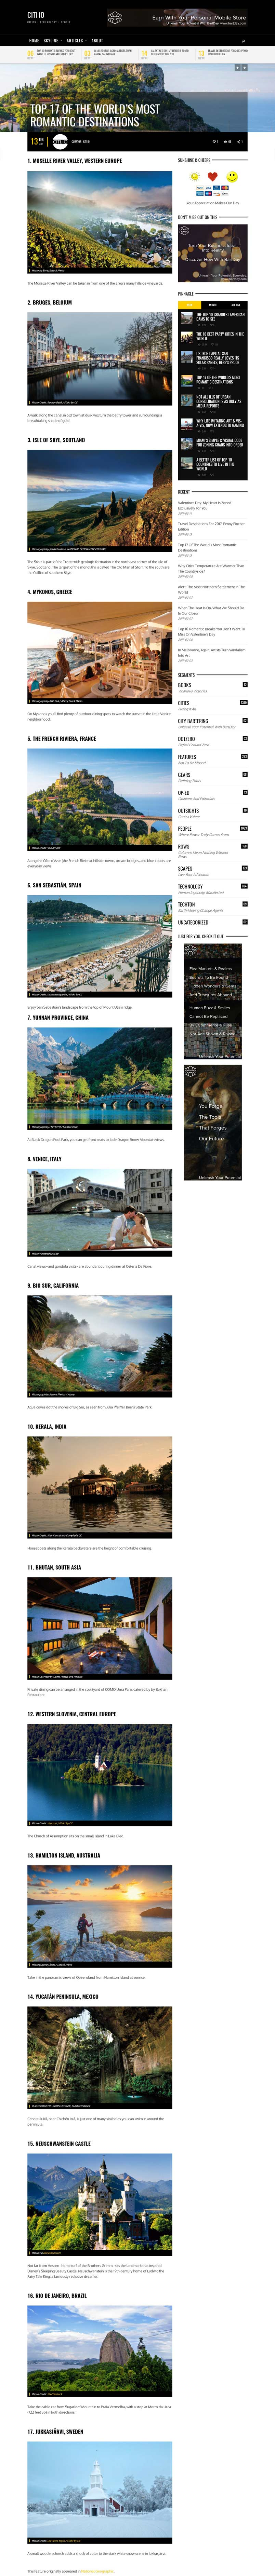 Top-17-Of-the-worlds-most-romantic-destination